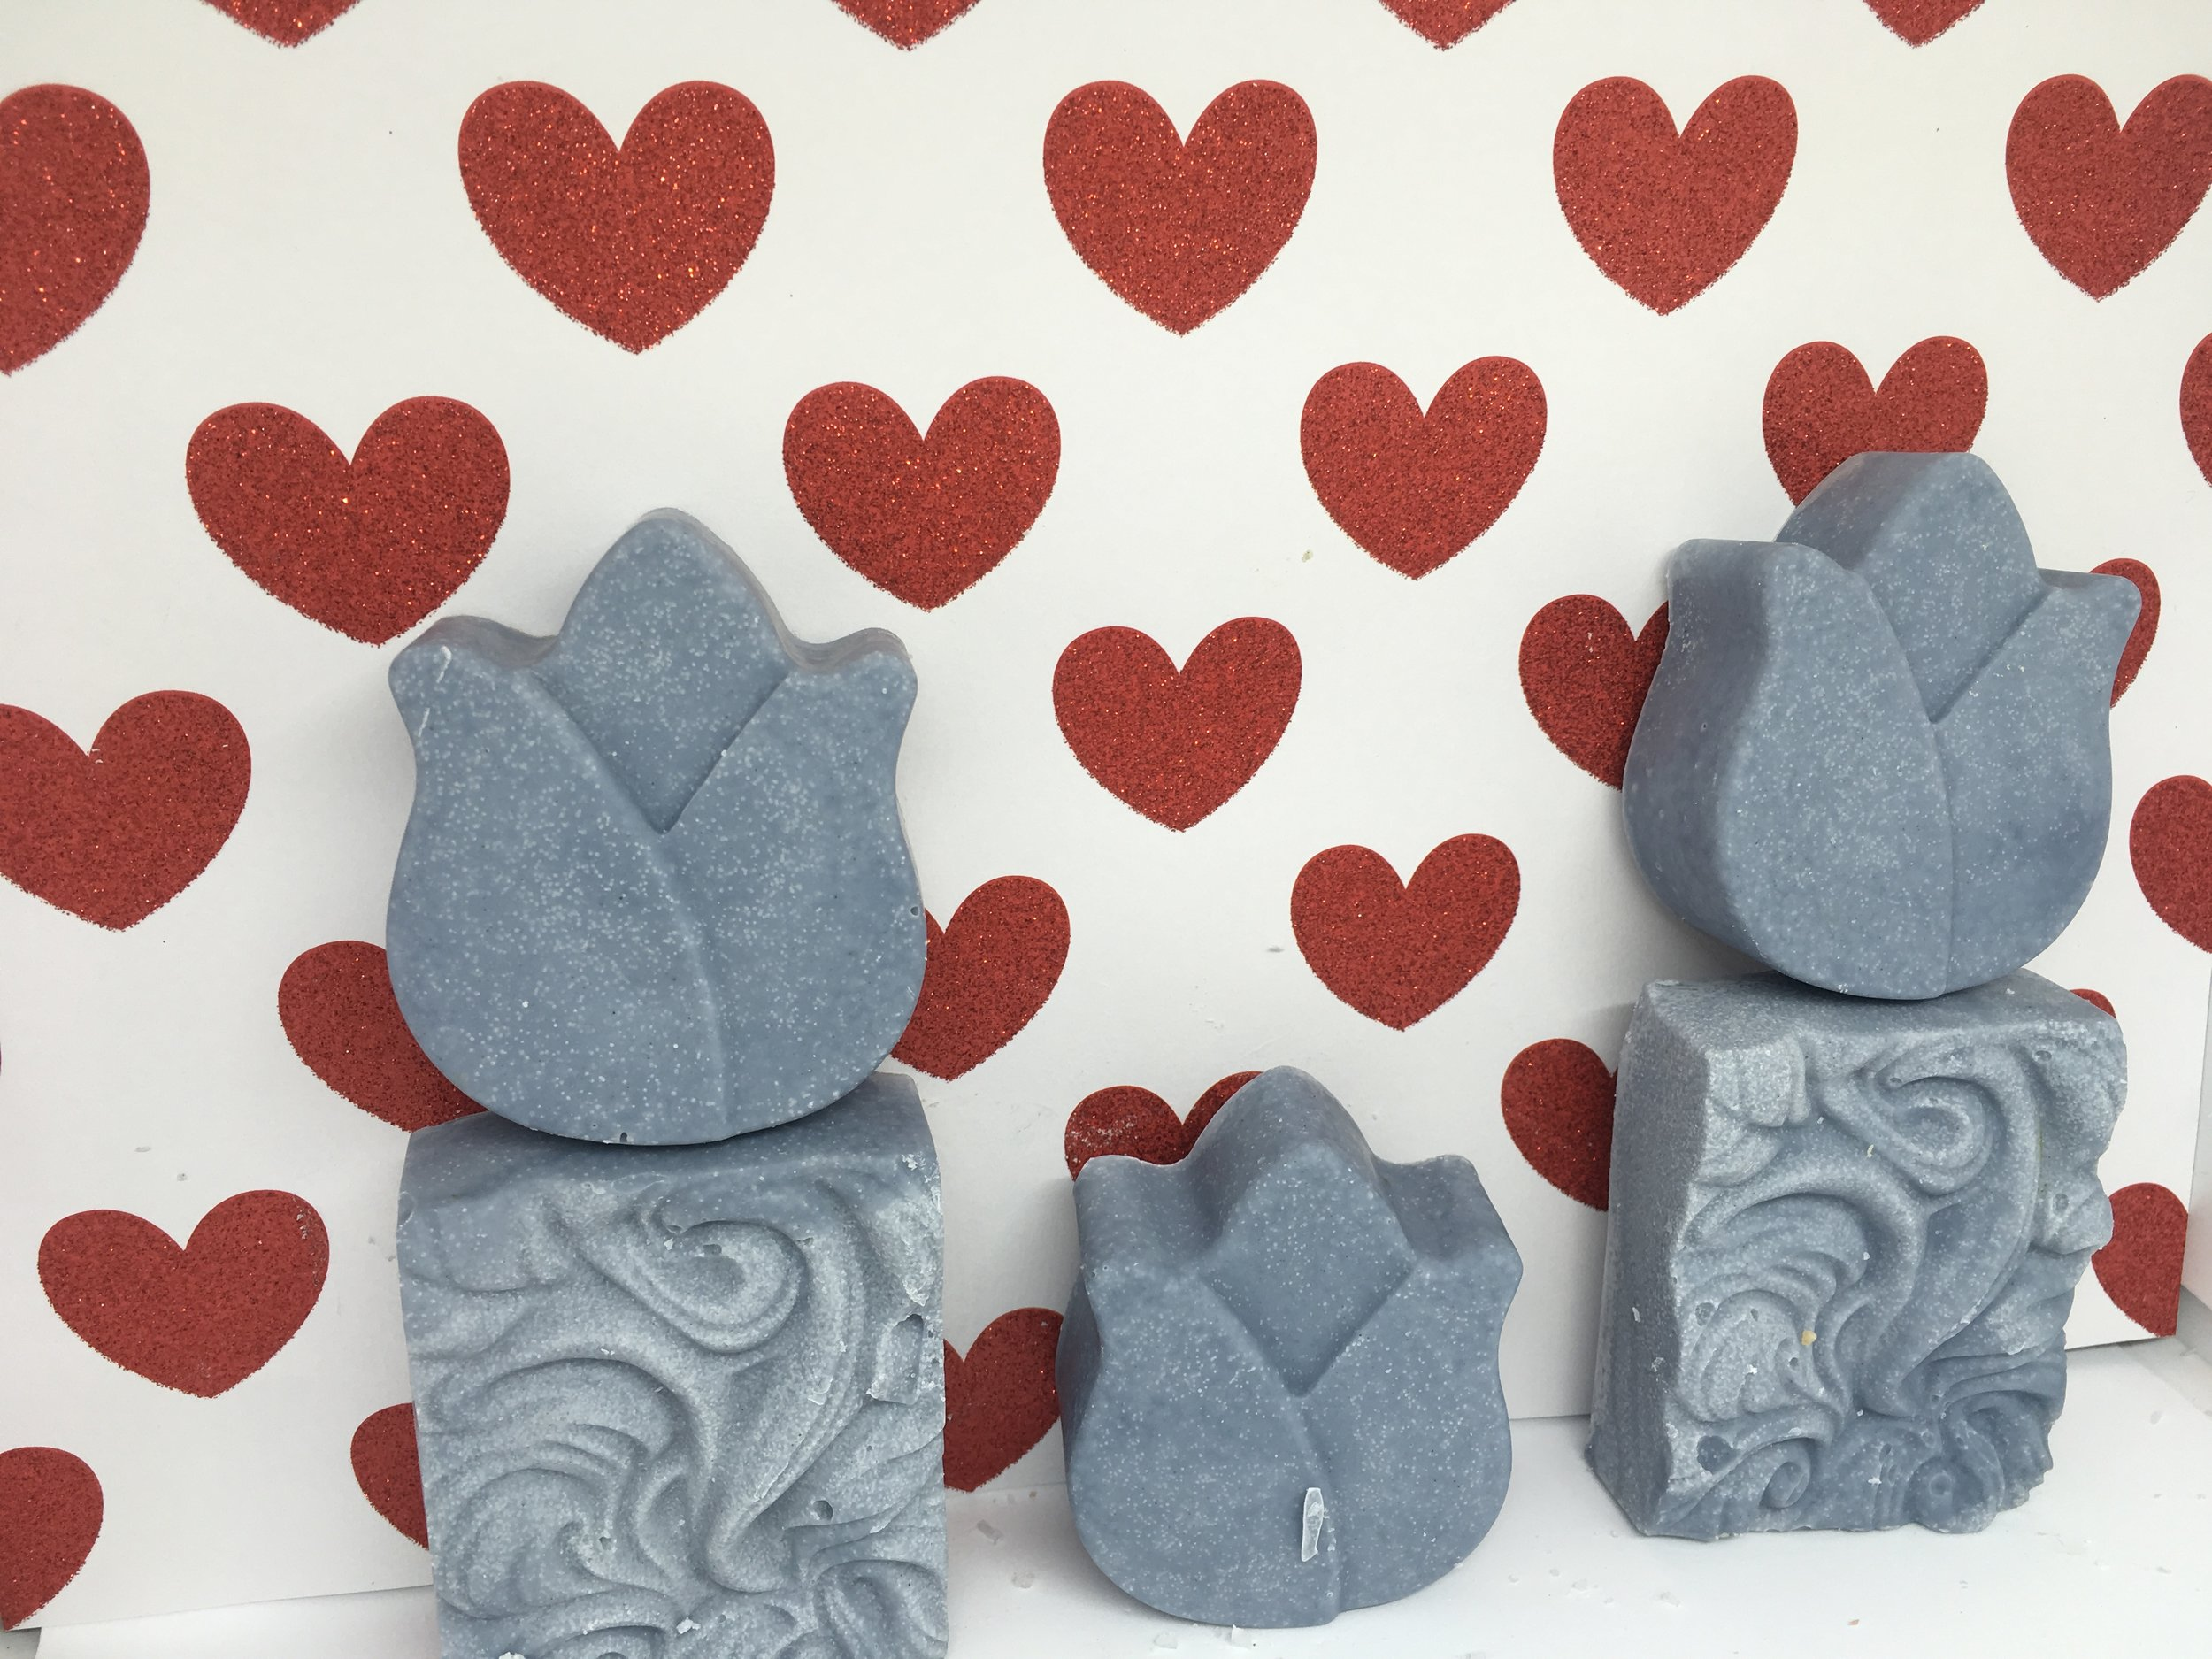 flowers, hearts and wavy molds $5.00 to $6.00